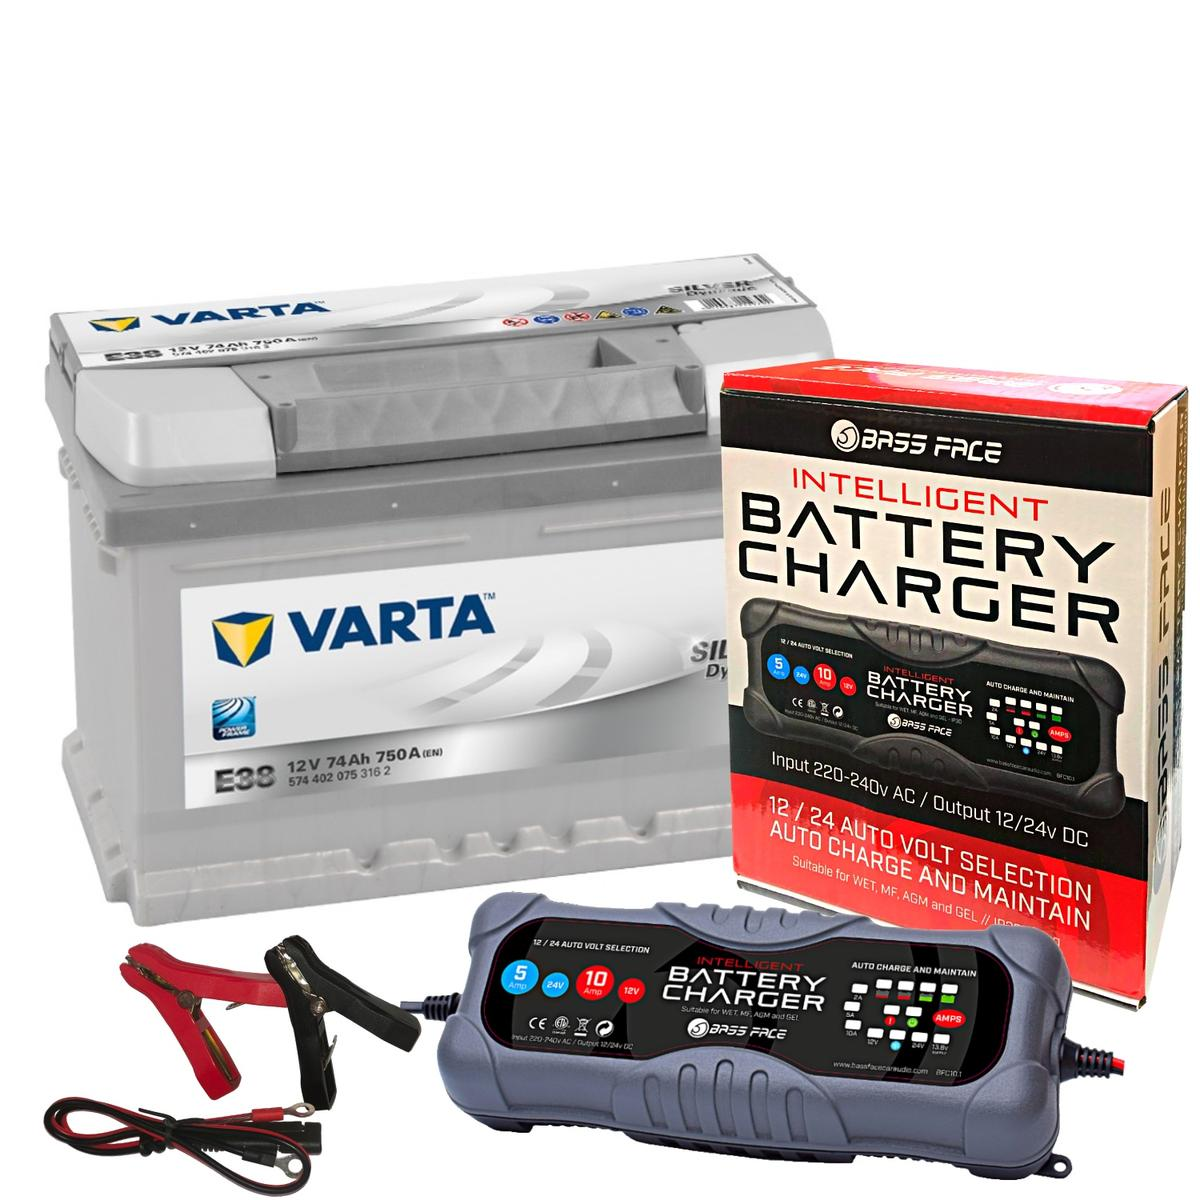 Varta E38 Audi Seat VW Car Battery 12v 5 Year 100 74Ah 750CCA W/ 10 Amp Charger